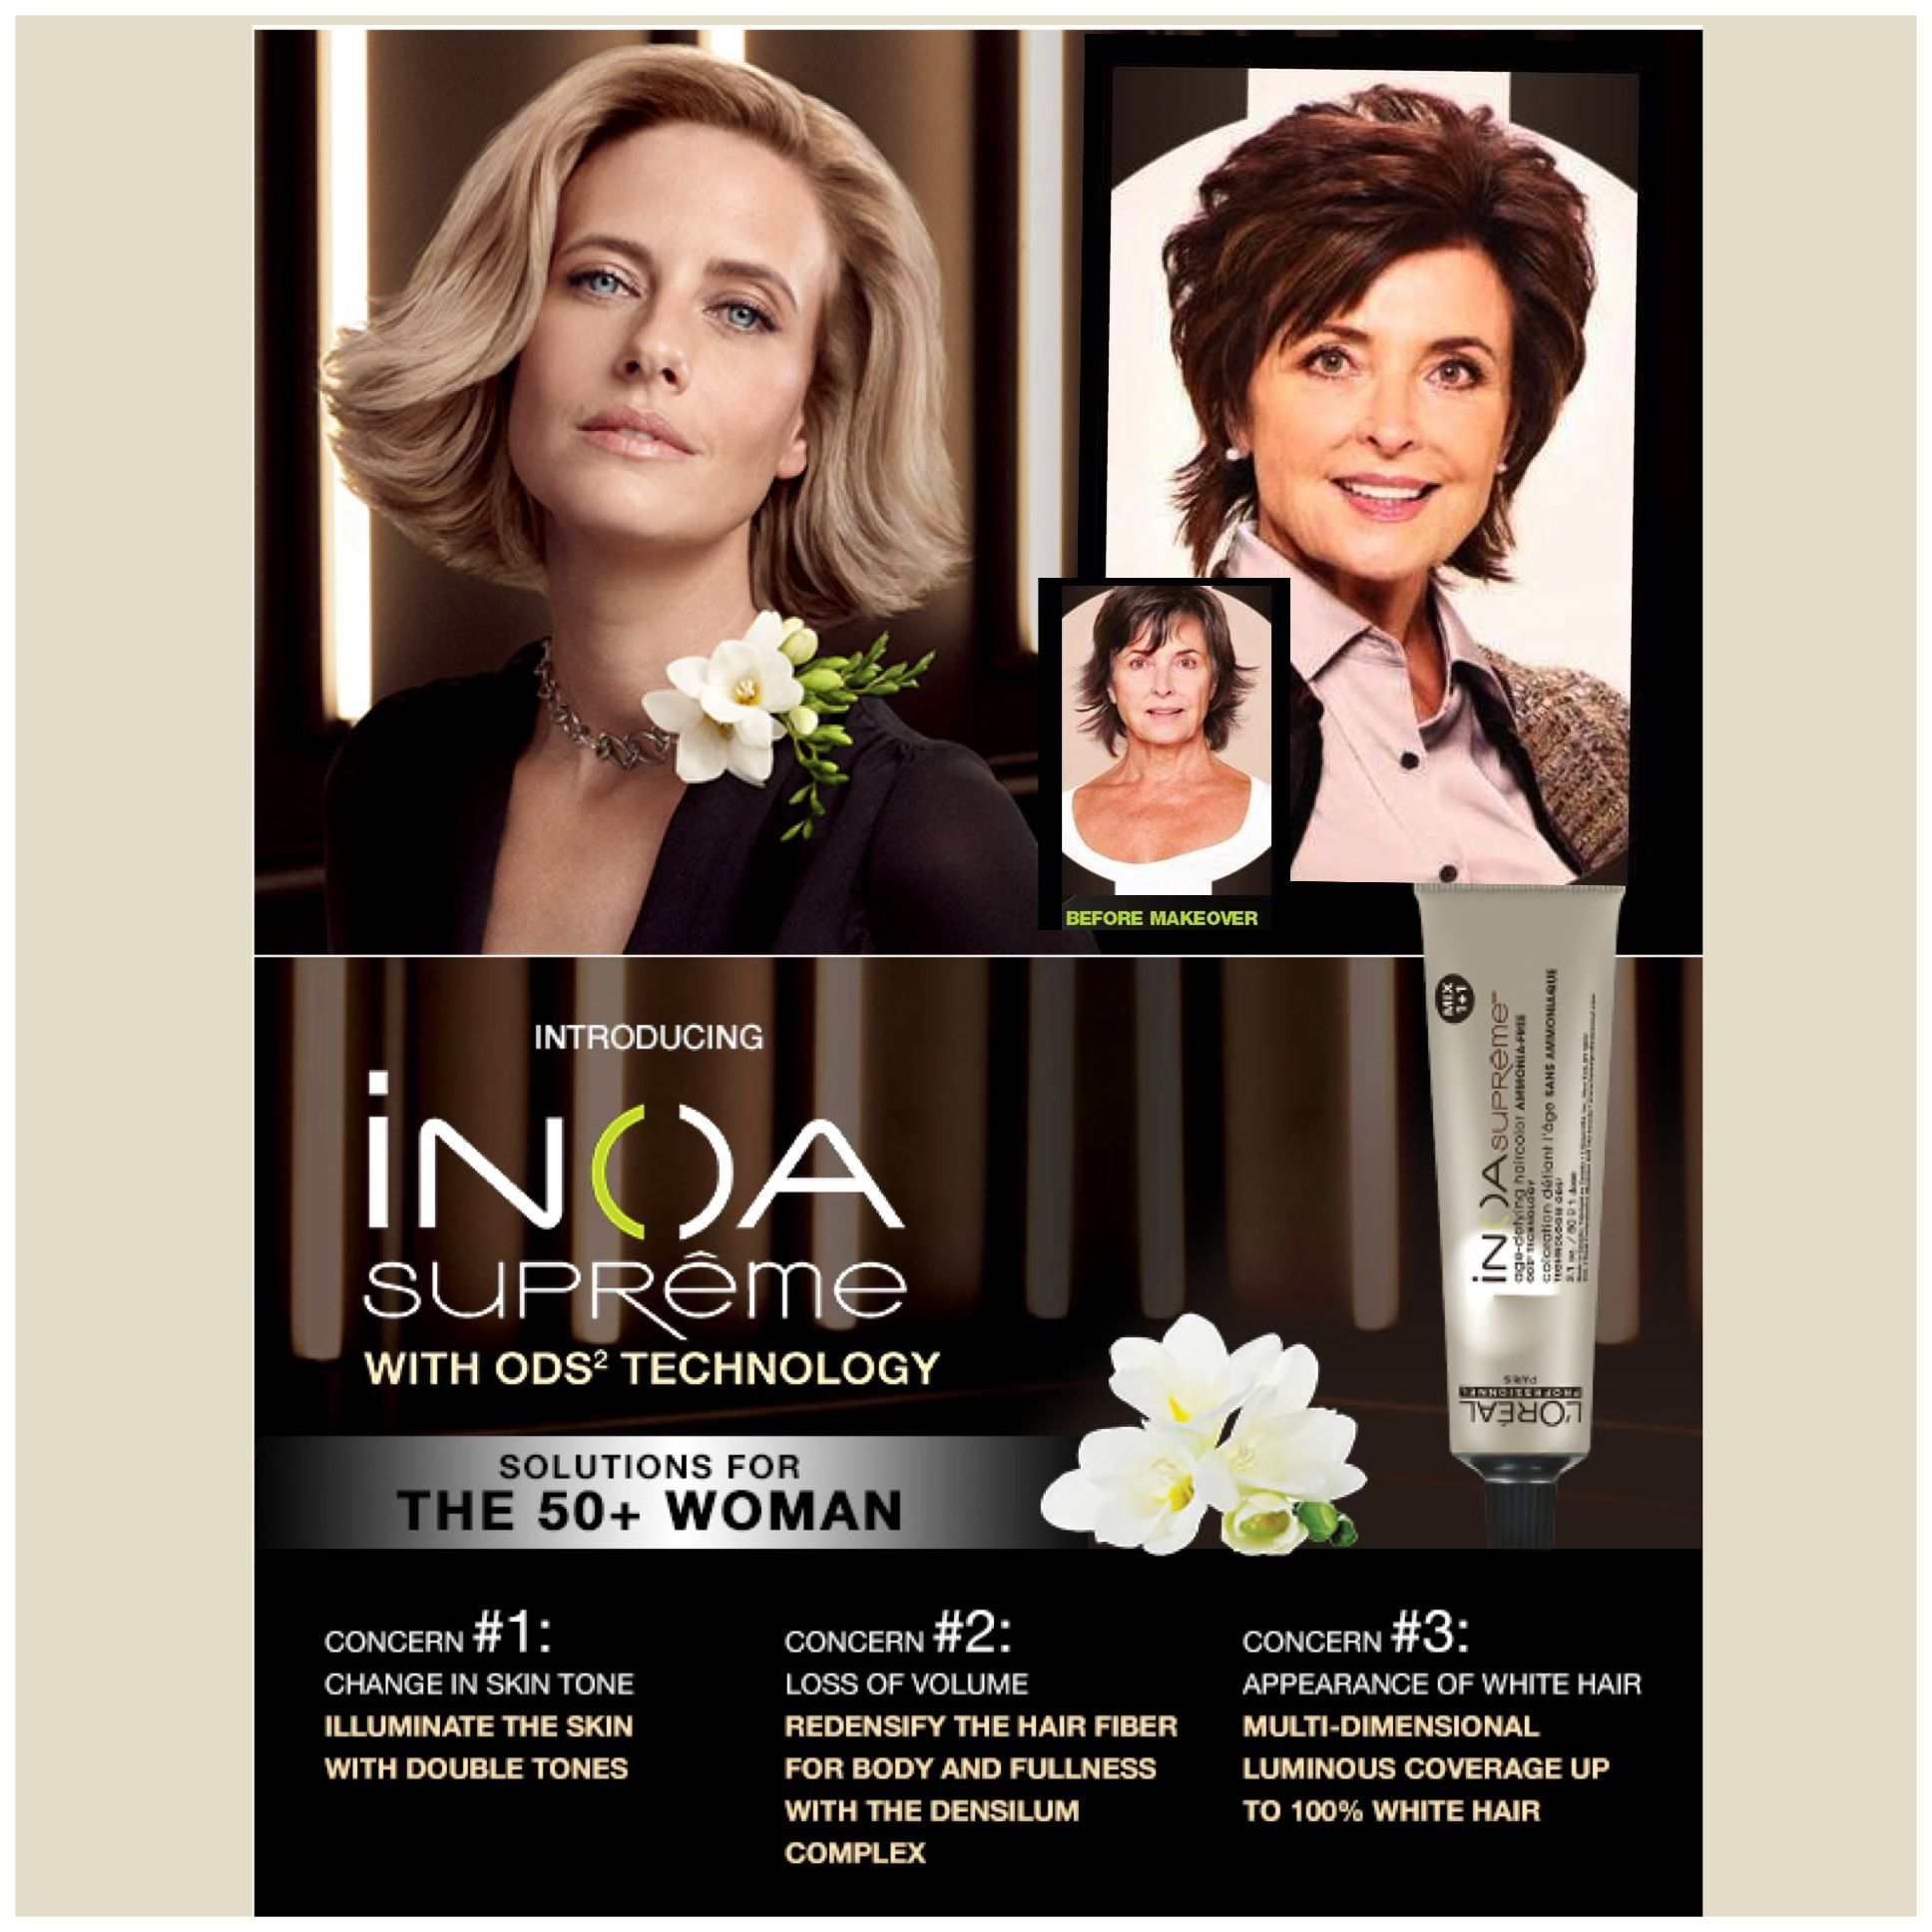 Inoa Supreme Color Hair Type Target Clients With 70 100 White